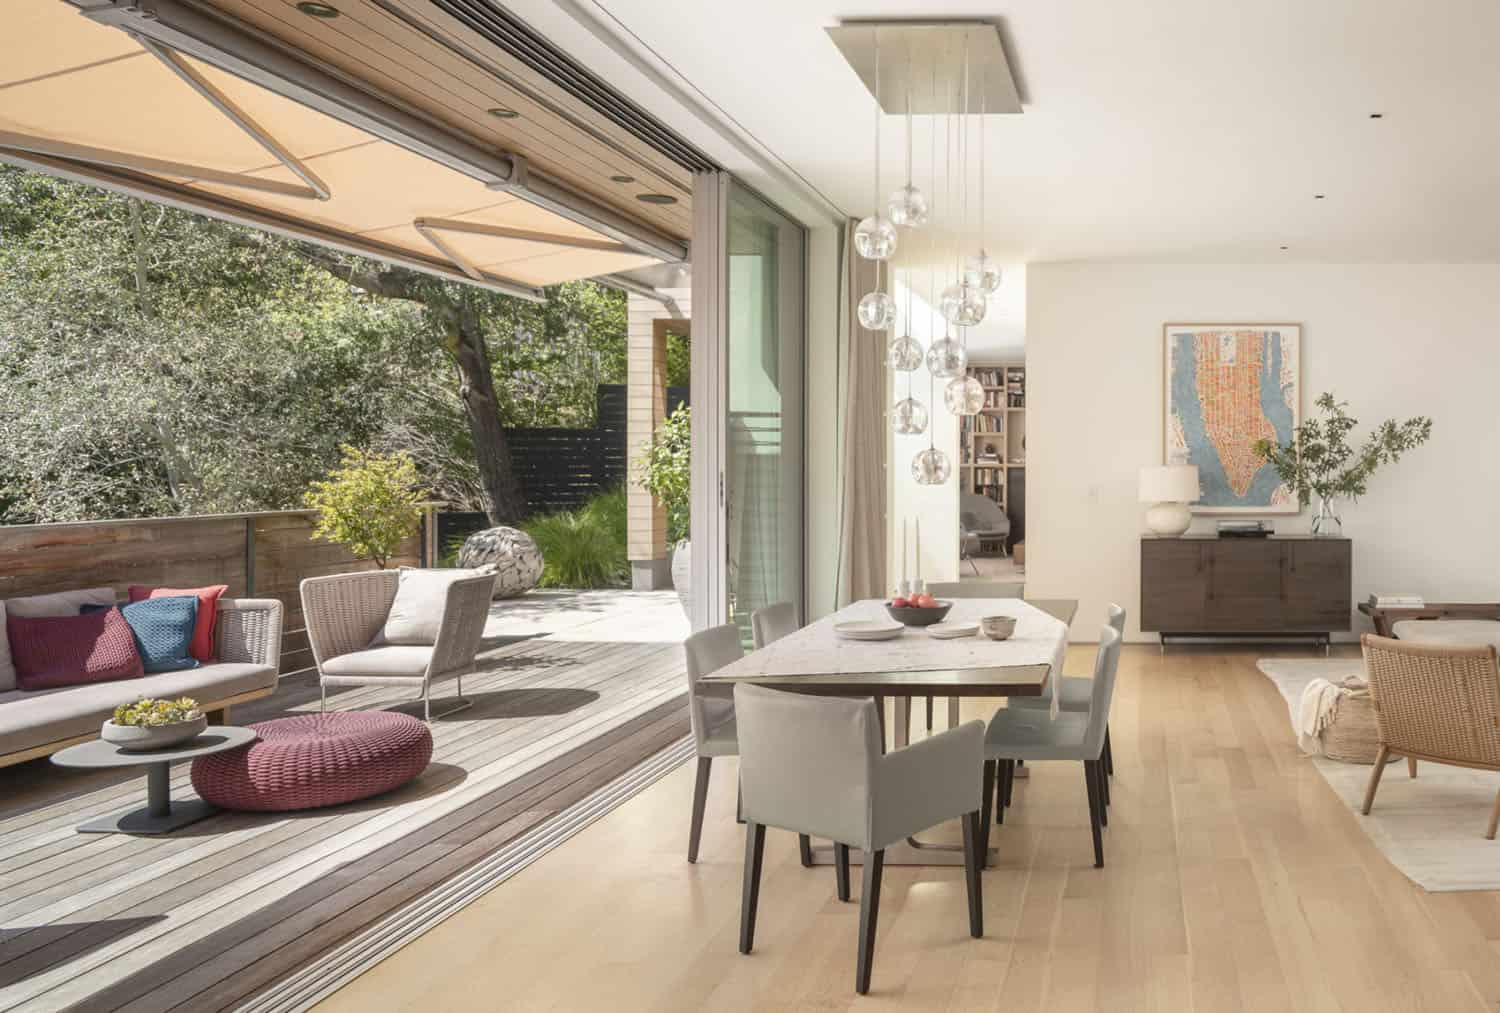 Stunning home remodel embraces indoor/outdoor California lifestyle